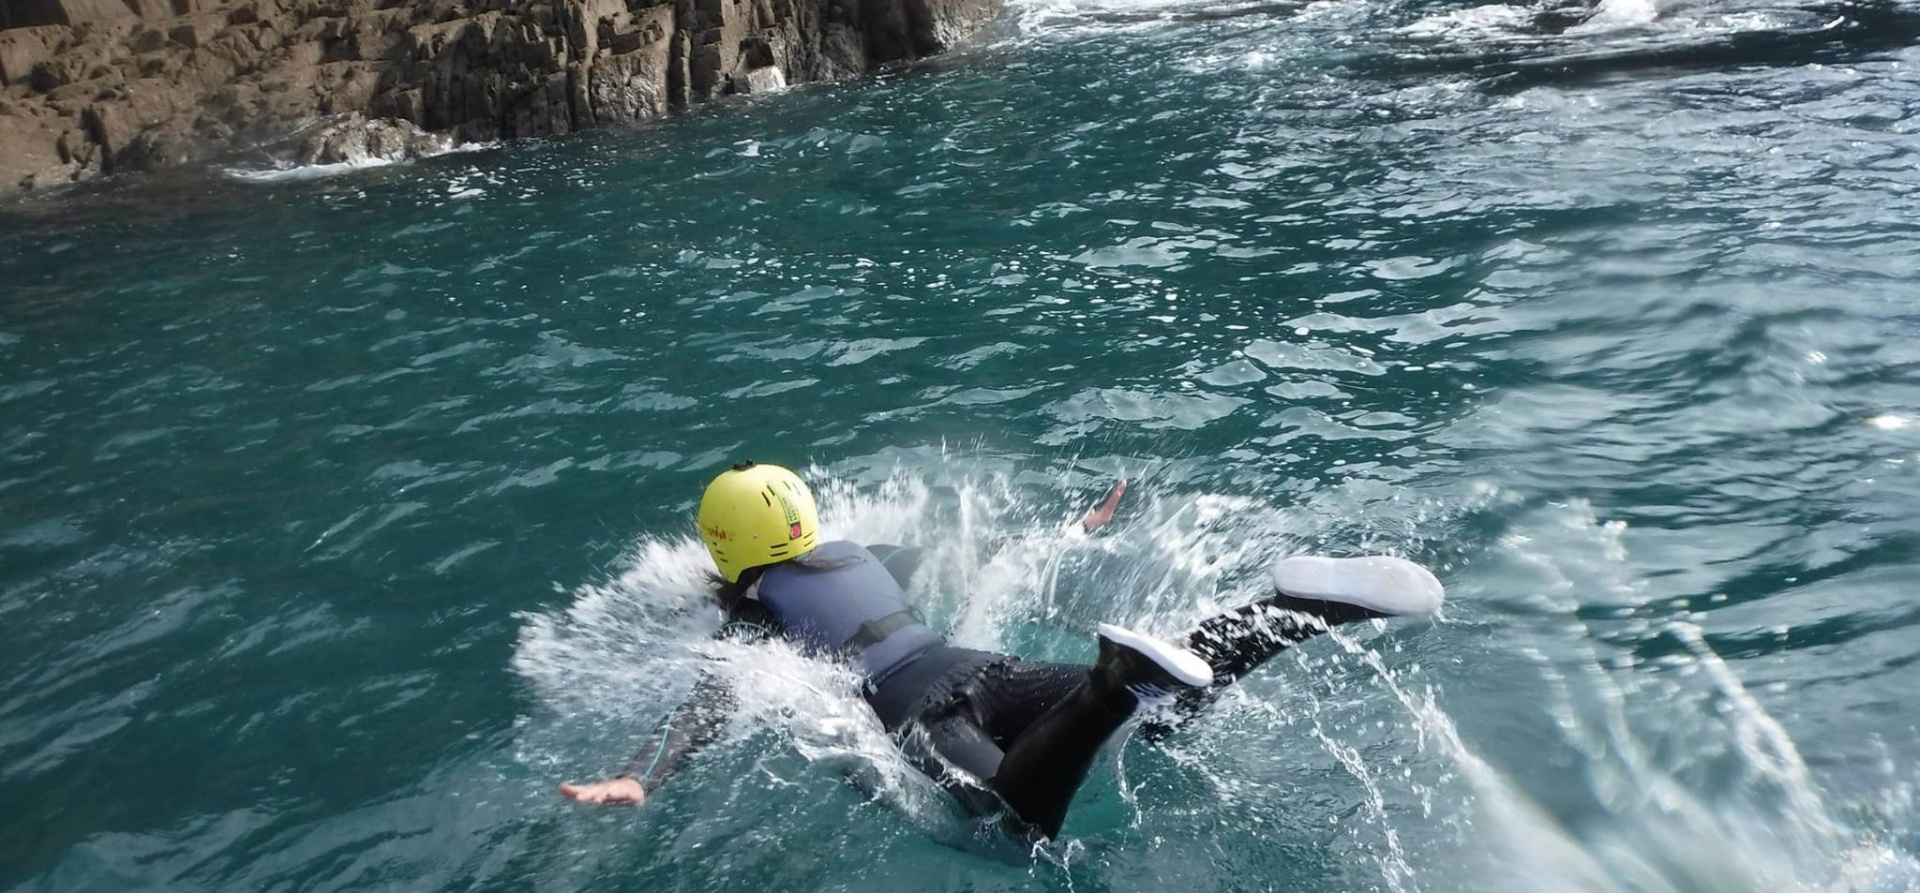 Full Day Coasteering Adventure in Pembrokeshire-7